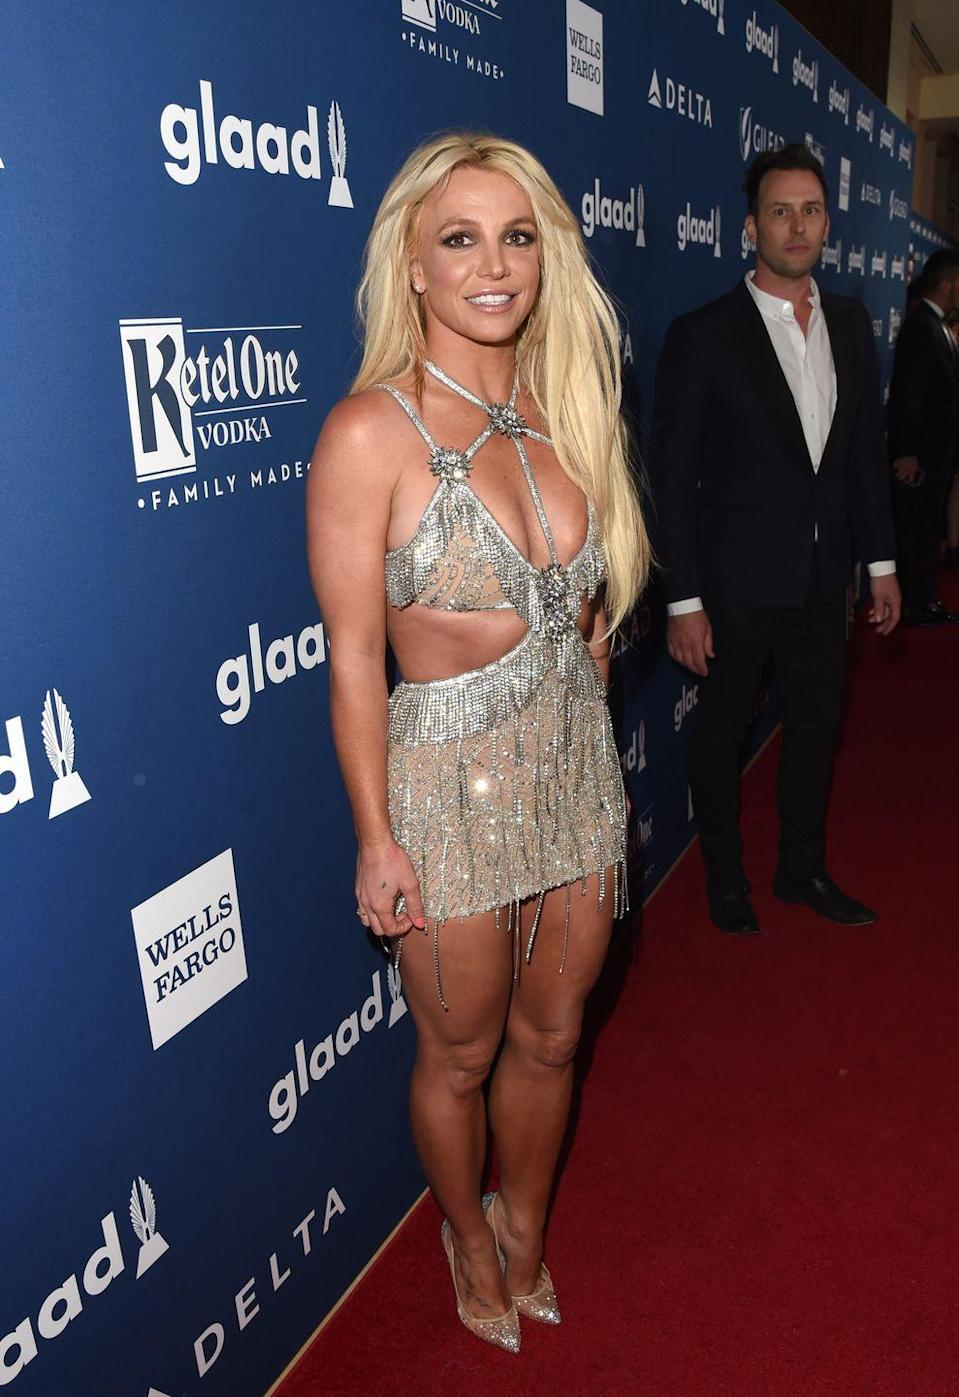 <p>Britney attends the GLAAD Media Awards in a strappy fringed metallic number with plenty of cutouts. She paired the ensemble with coordinating see-through heels. An icon!</p>